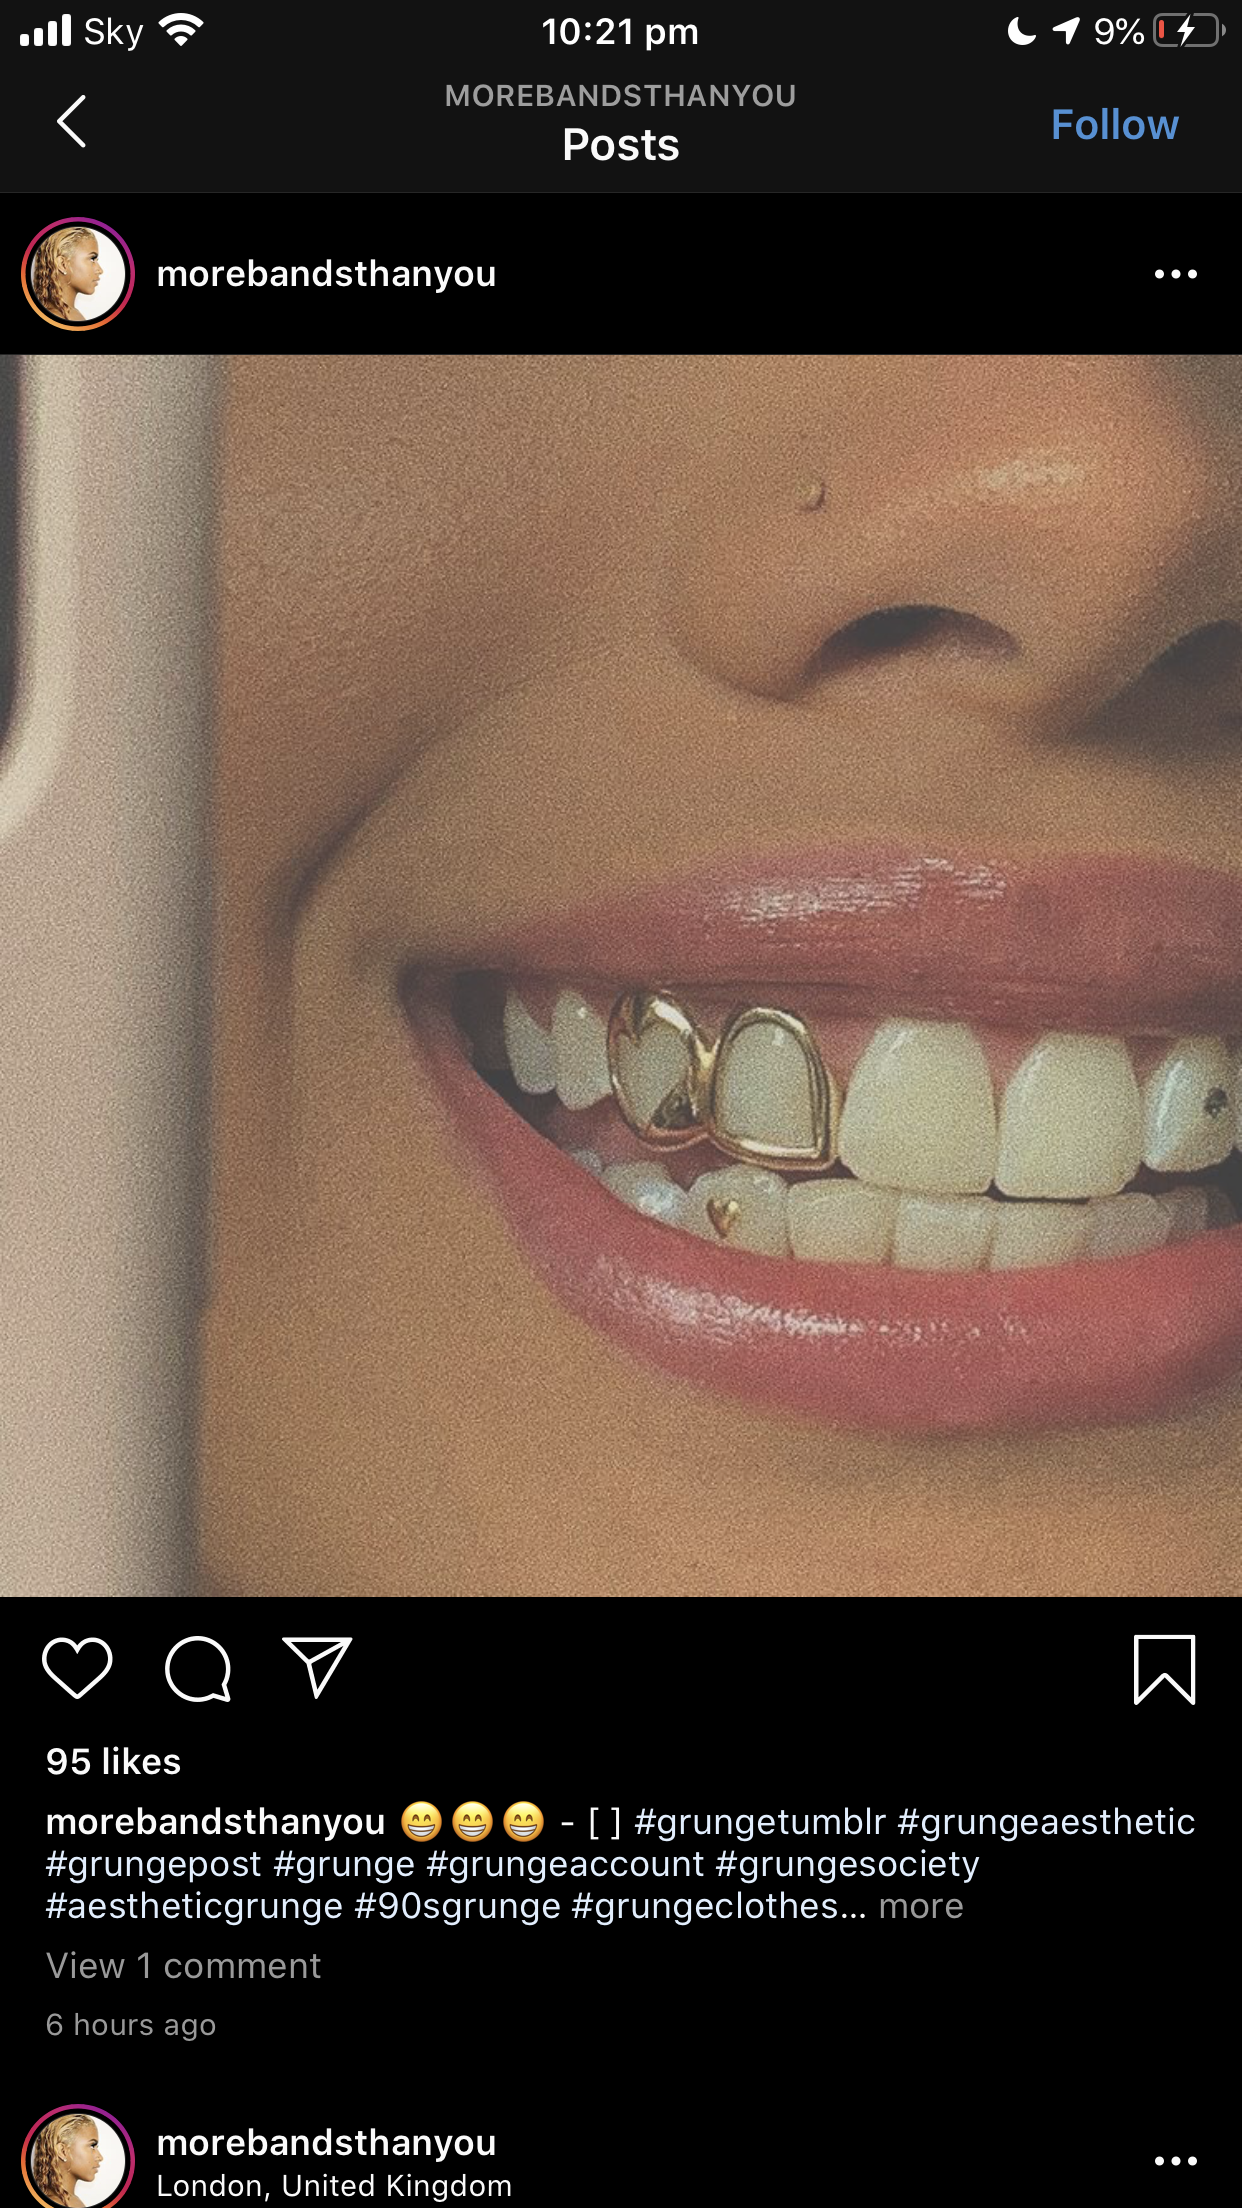 Pin By Ama Harley On Grillzntoothgems In 2020 Gold Teeth Teeth Jewelry Grillz